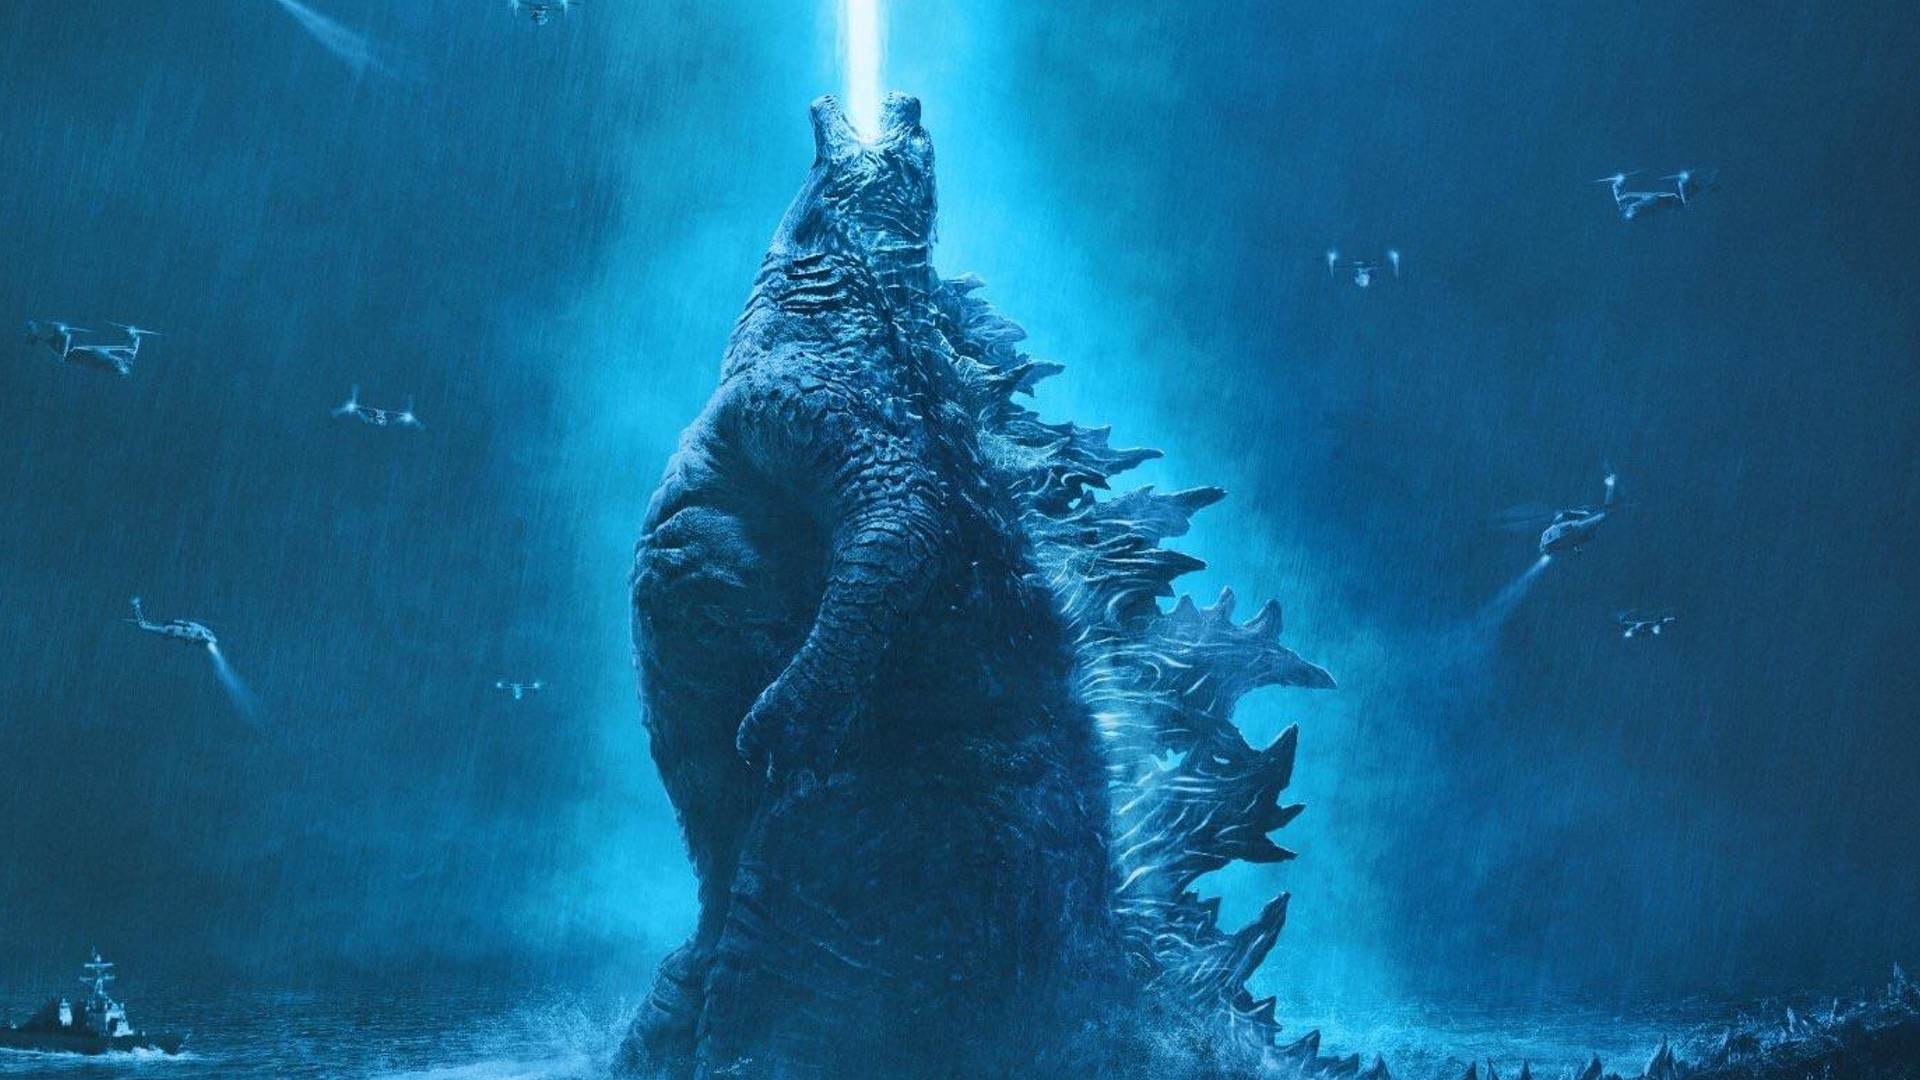 bask-in-the-glory-of-this-new-poster-for-godzilla-king-of-the-monsters-social.jpg